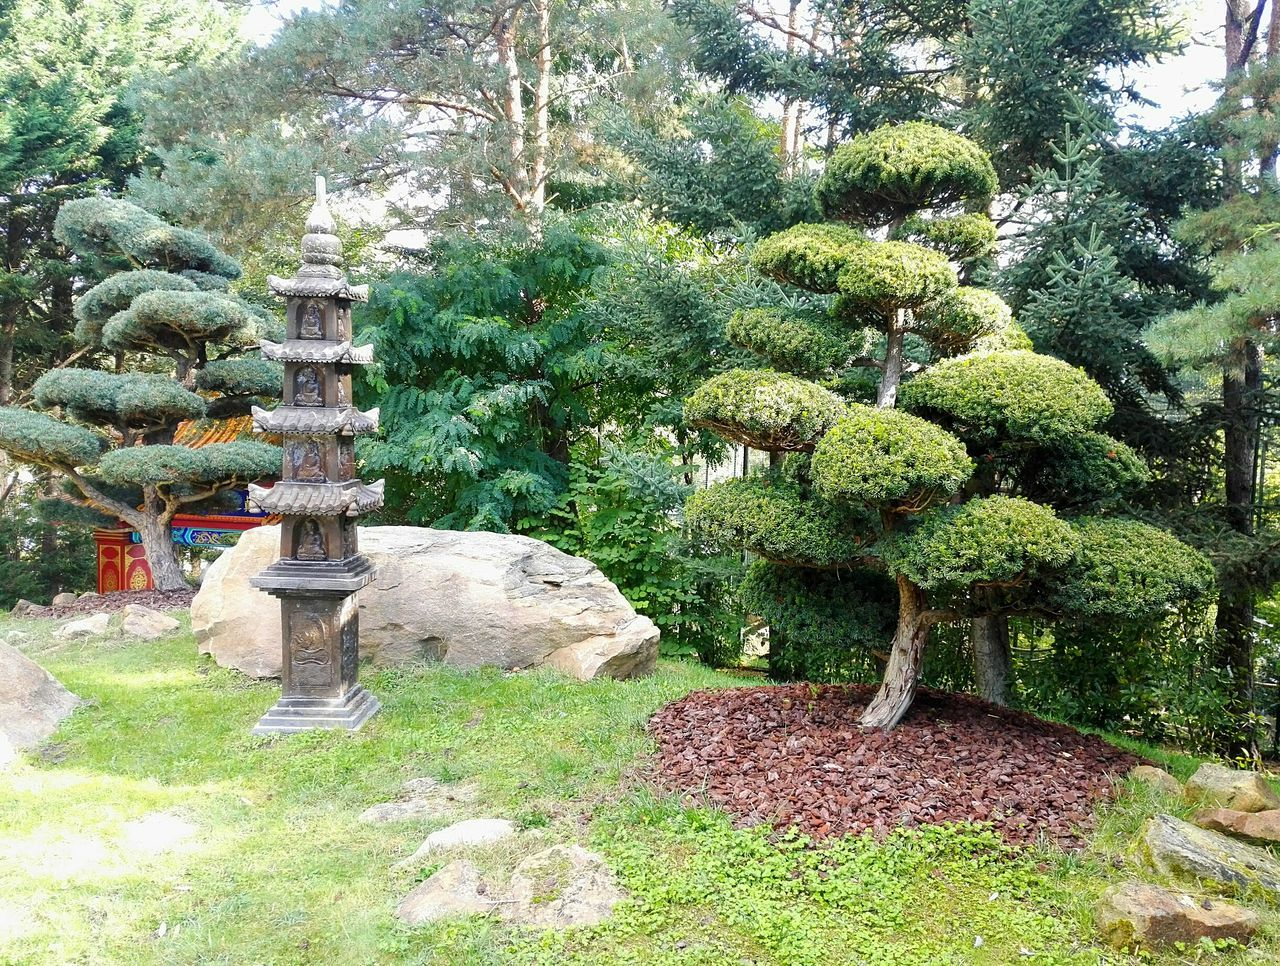 Tree Tranquility Growth Tranquil Scene Plant Park - Man Made Space Nature In A Row Garden Scenics Beauty In Nature Day Footpath Outdoors Formal Garden Solitude Park Green Color Flower Tree Non-urban Scene Asian Culture Asianstyle